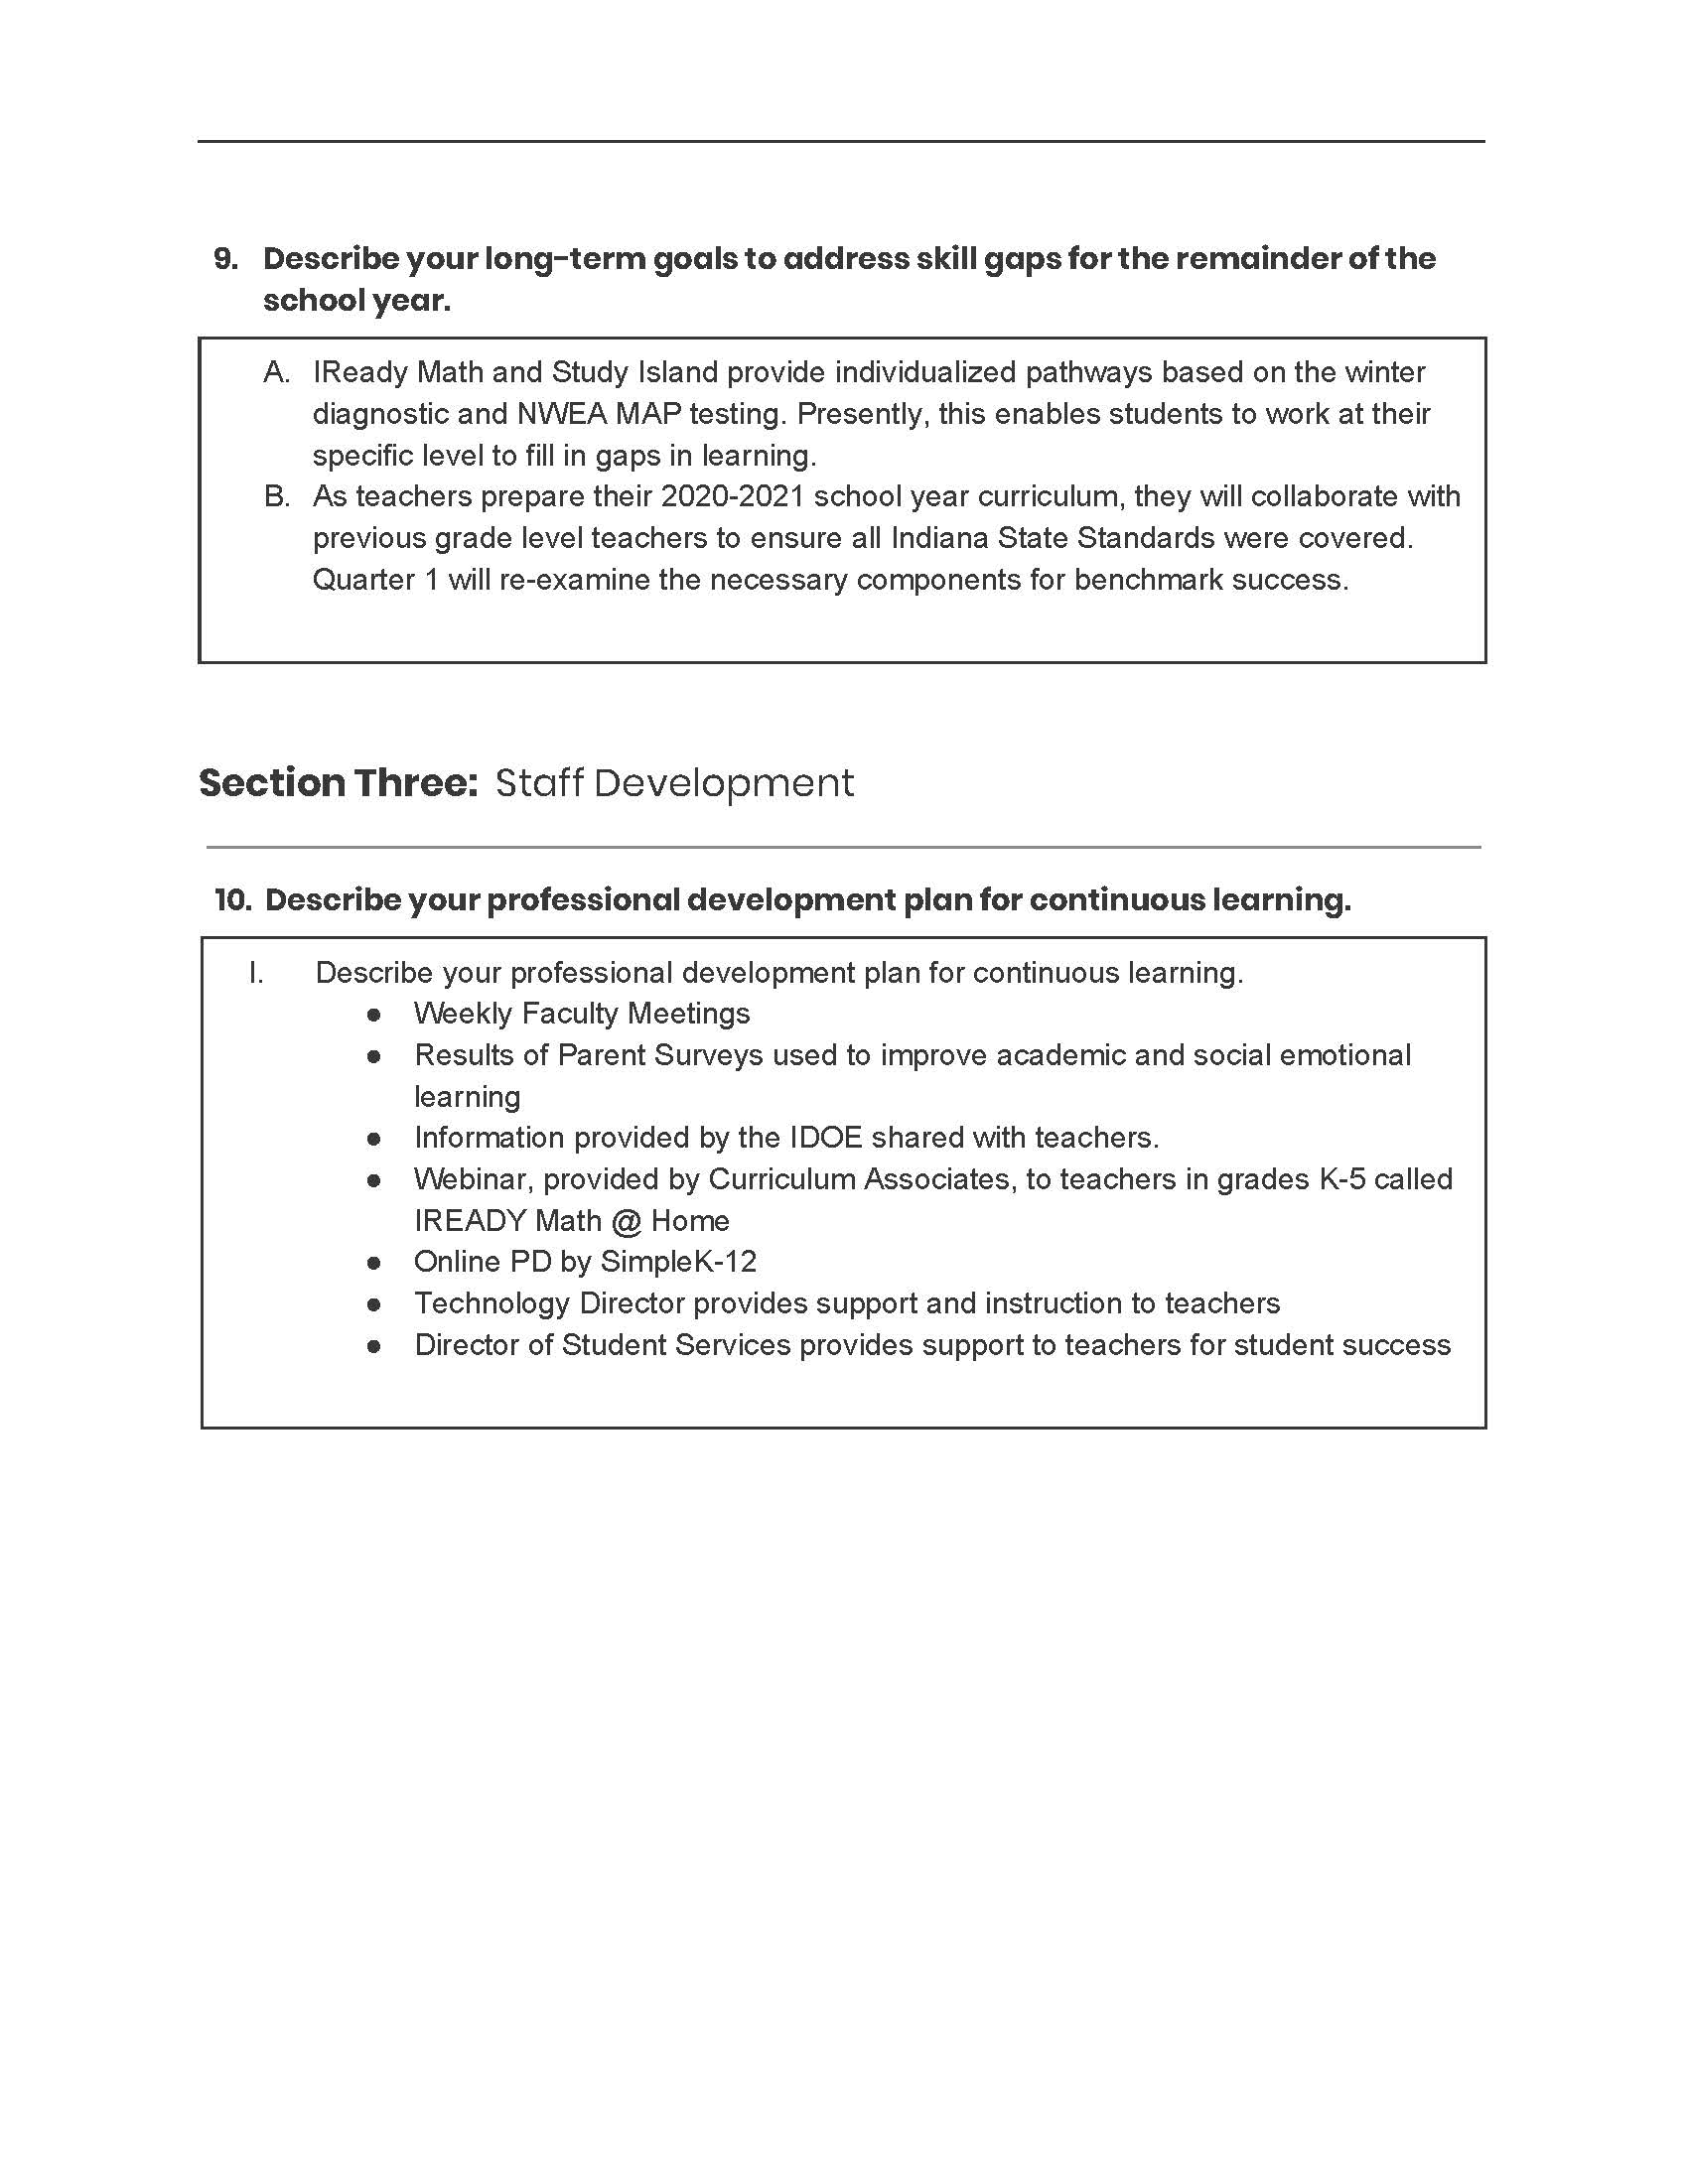 Continuous Learning Plan Page 4